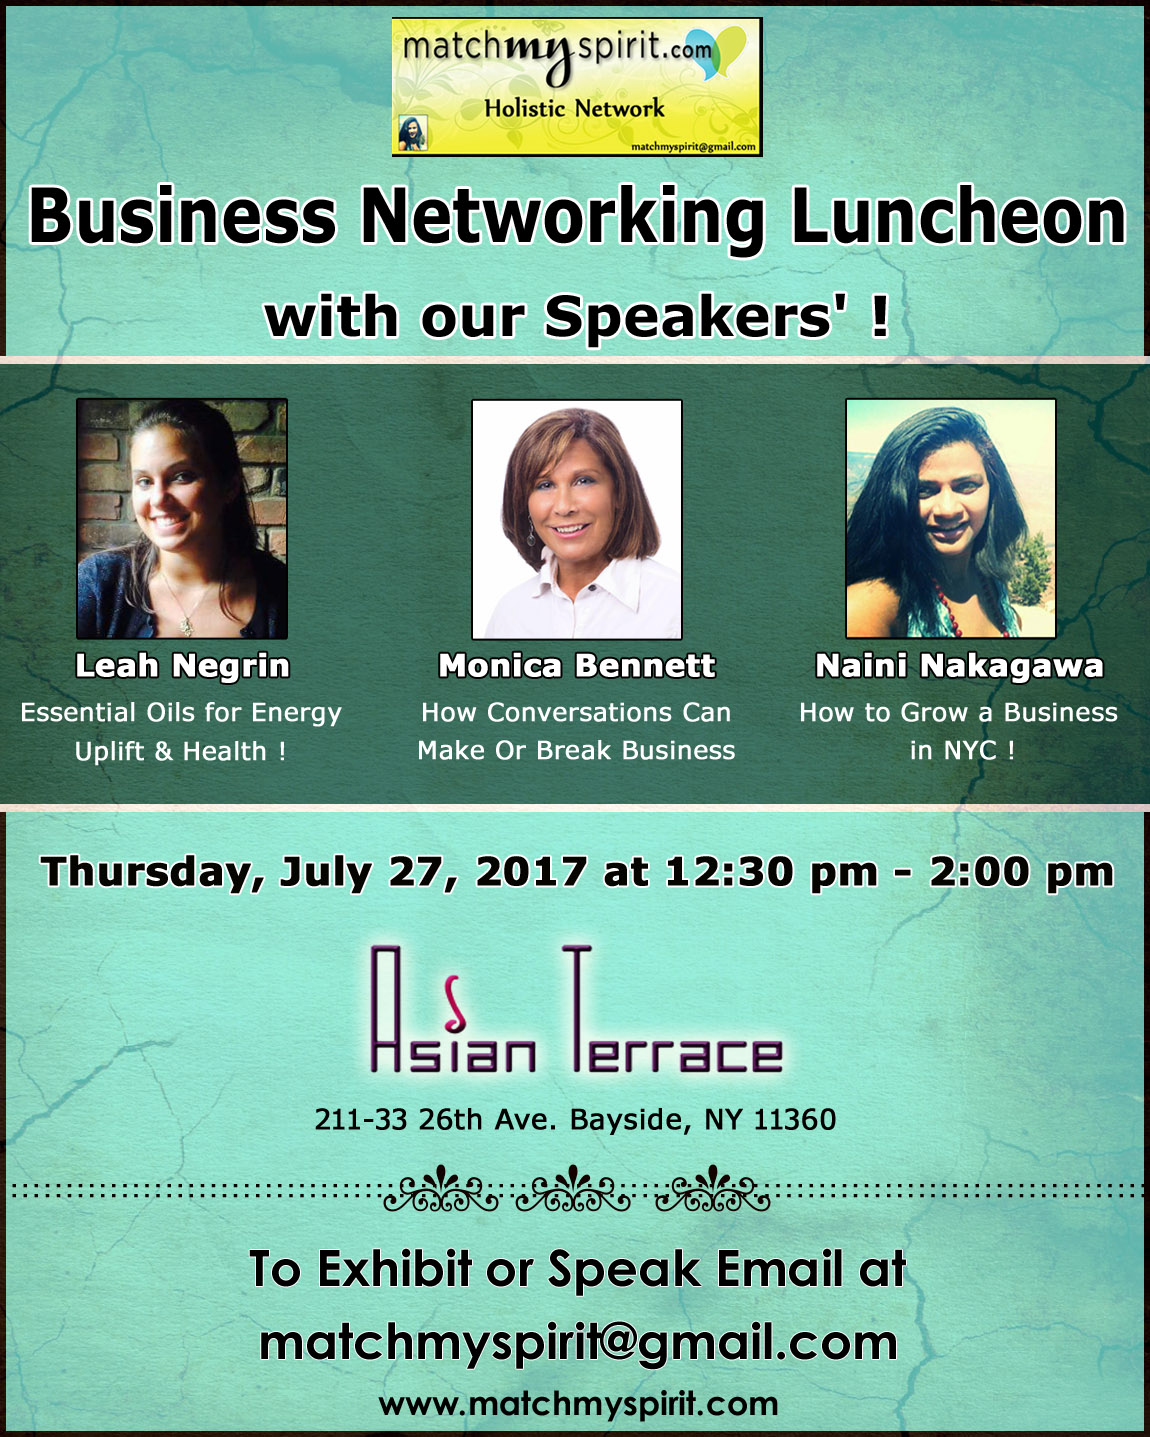 Business Networking Luncheon with our Speakers !